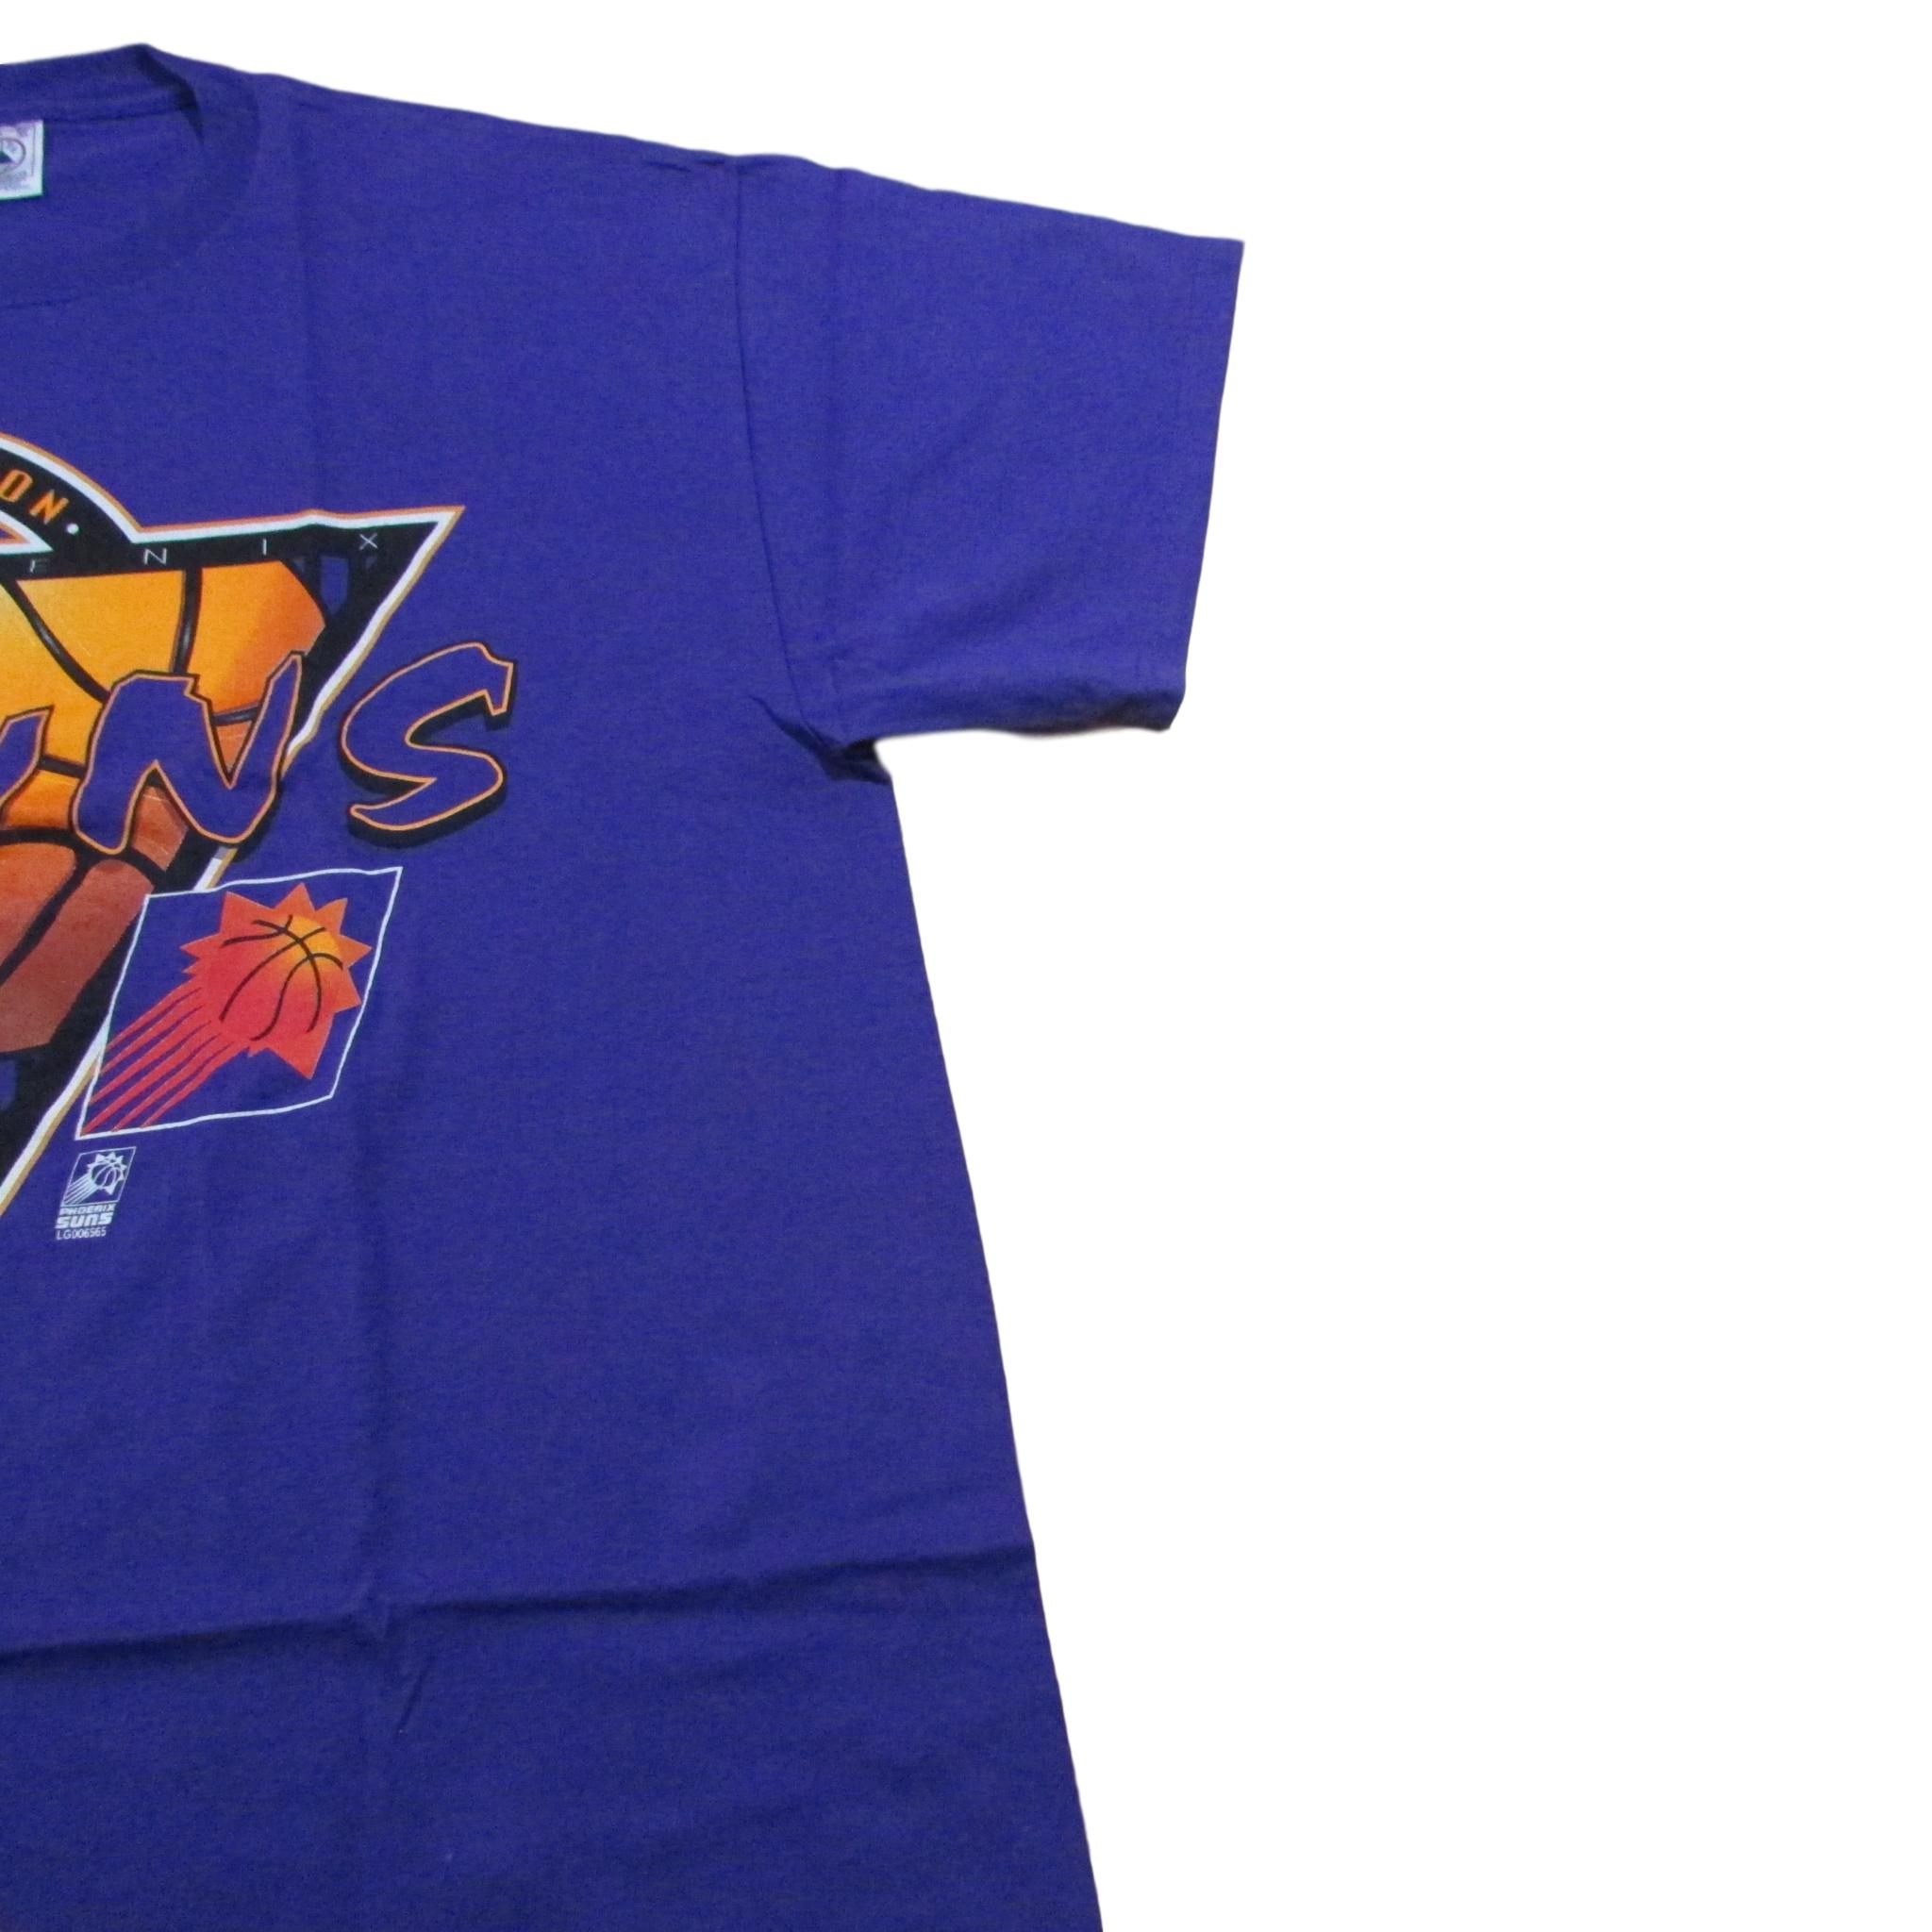 Phoenix Suns National Basketball Association Vintage T-Shirt Sz XL